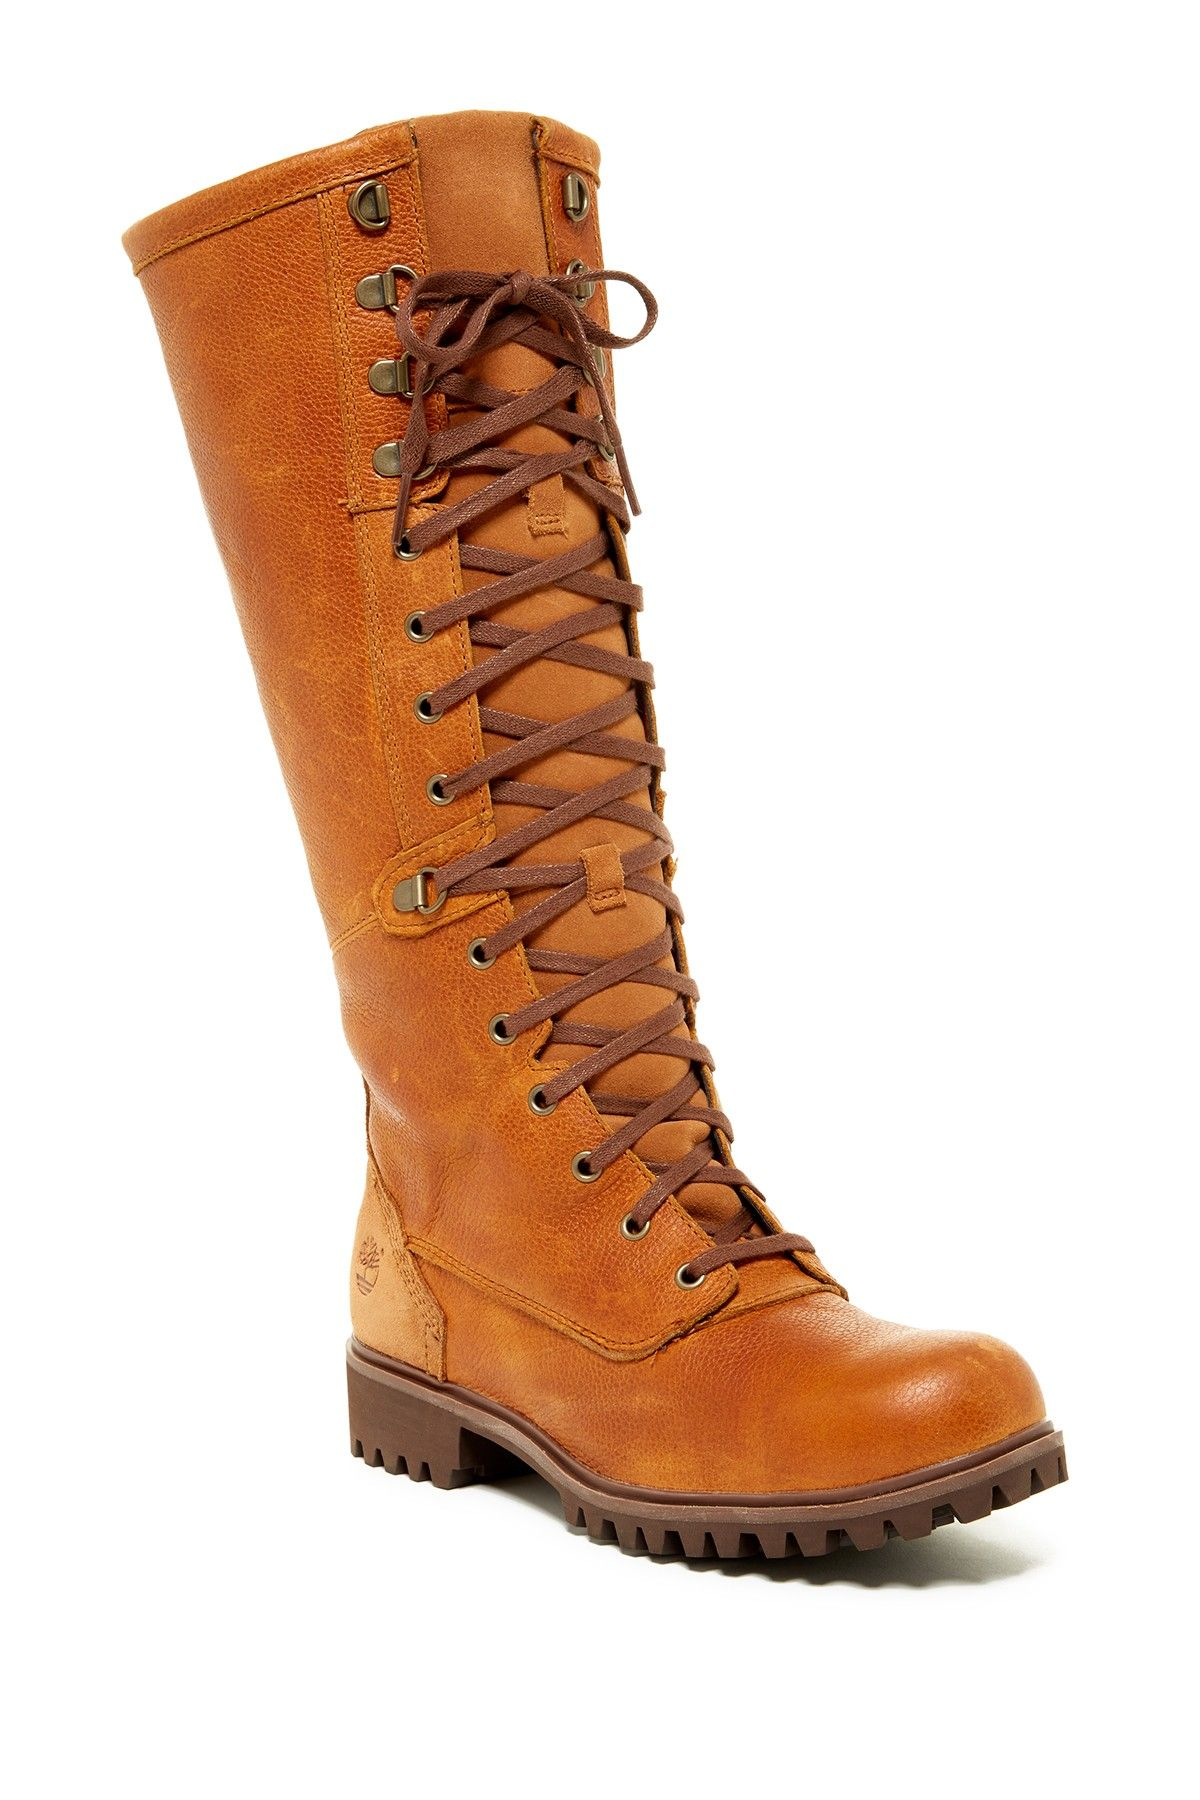 Tall Boots Boot Lace Up 2019Shoes Wheelwright In eWDYE9IH2